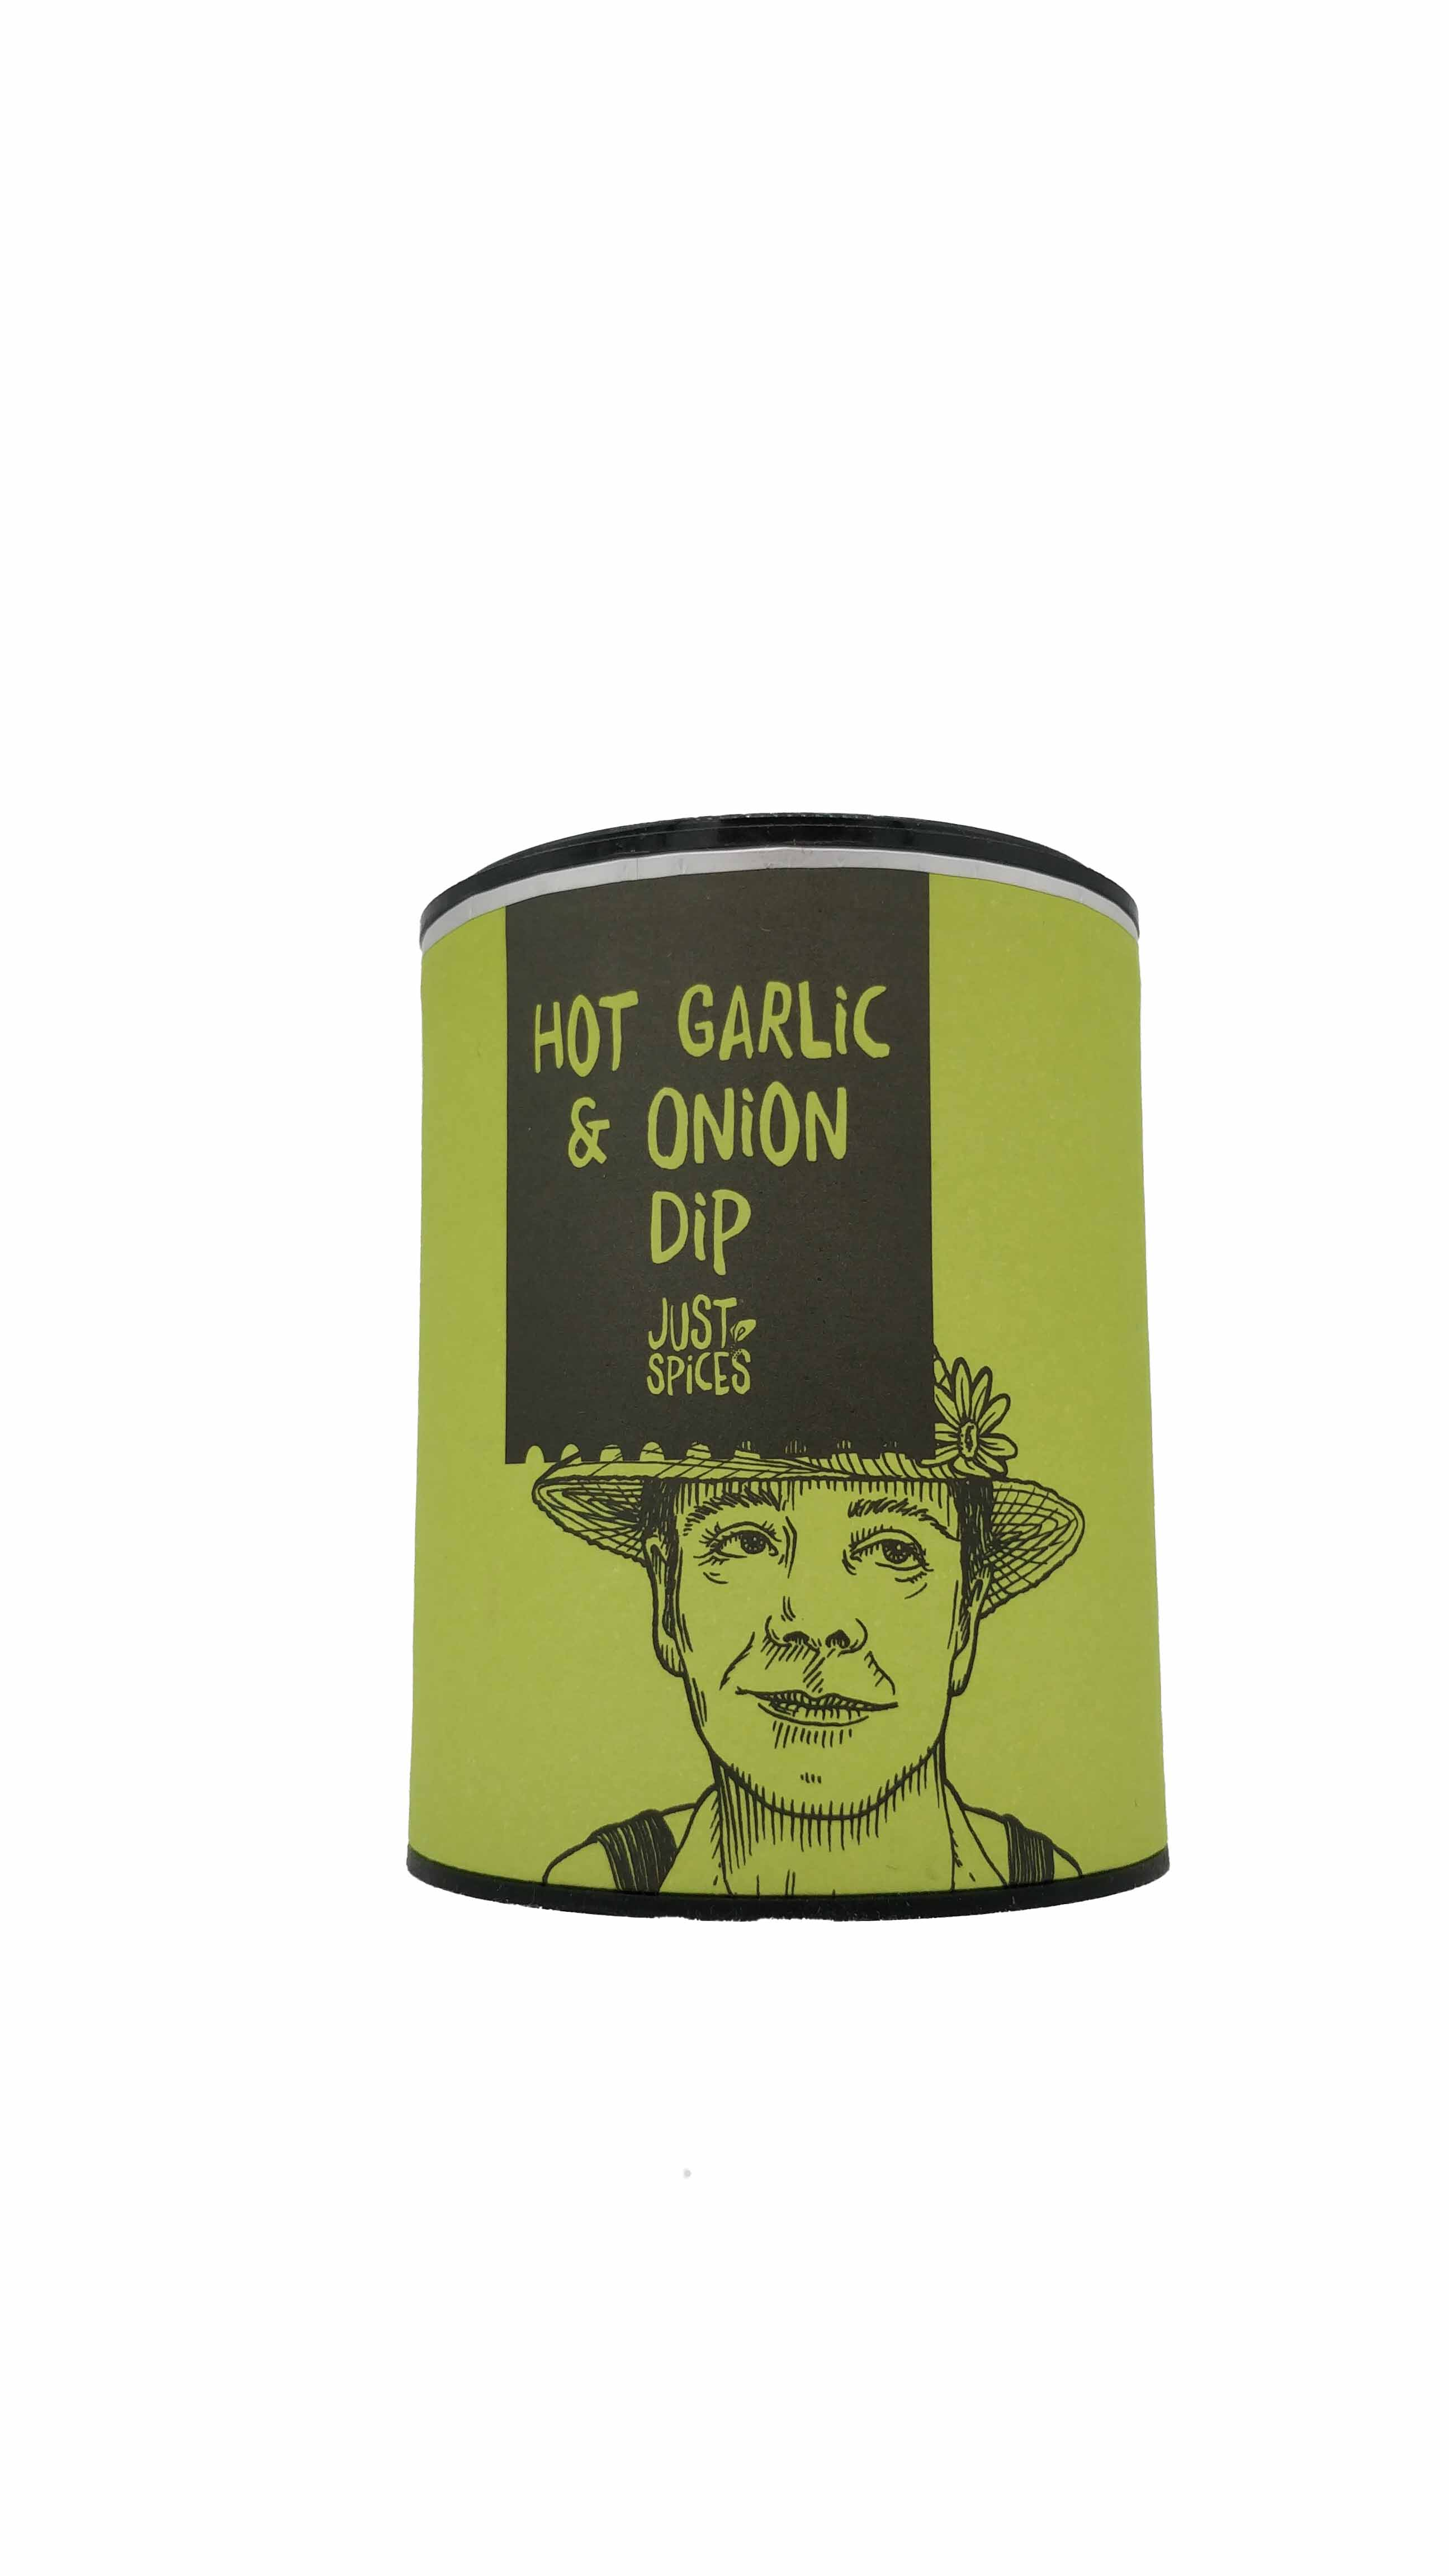 Just Spices Hot Garlic & Onion Dip, 36g Dose